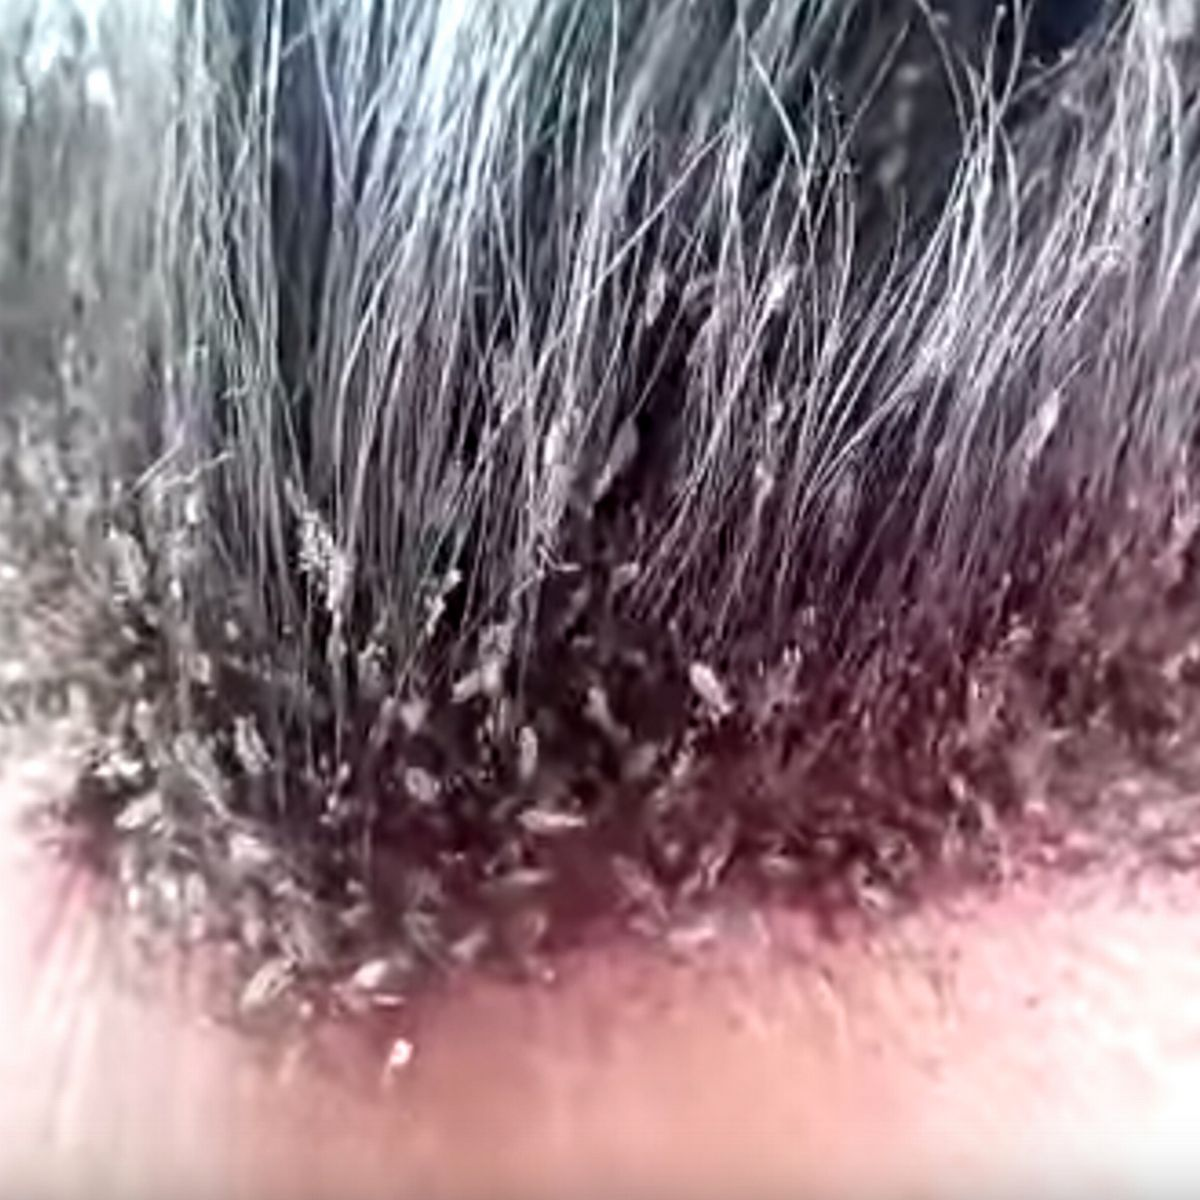 How to Get Rid of Head Lice in Nigeria